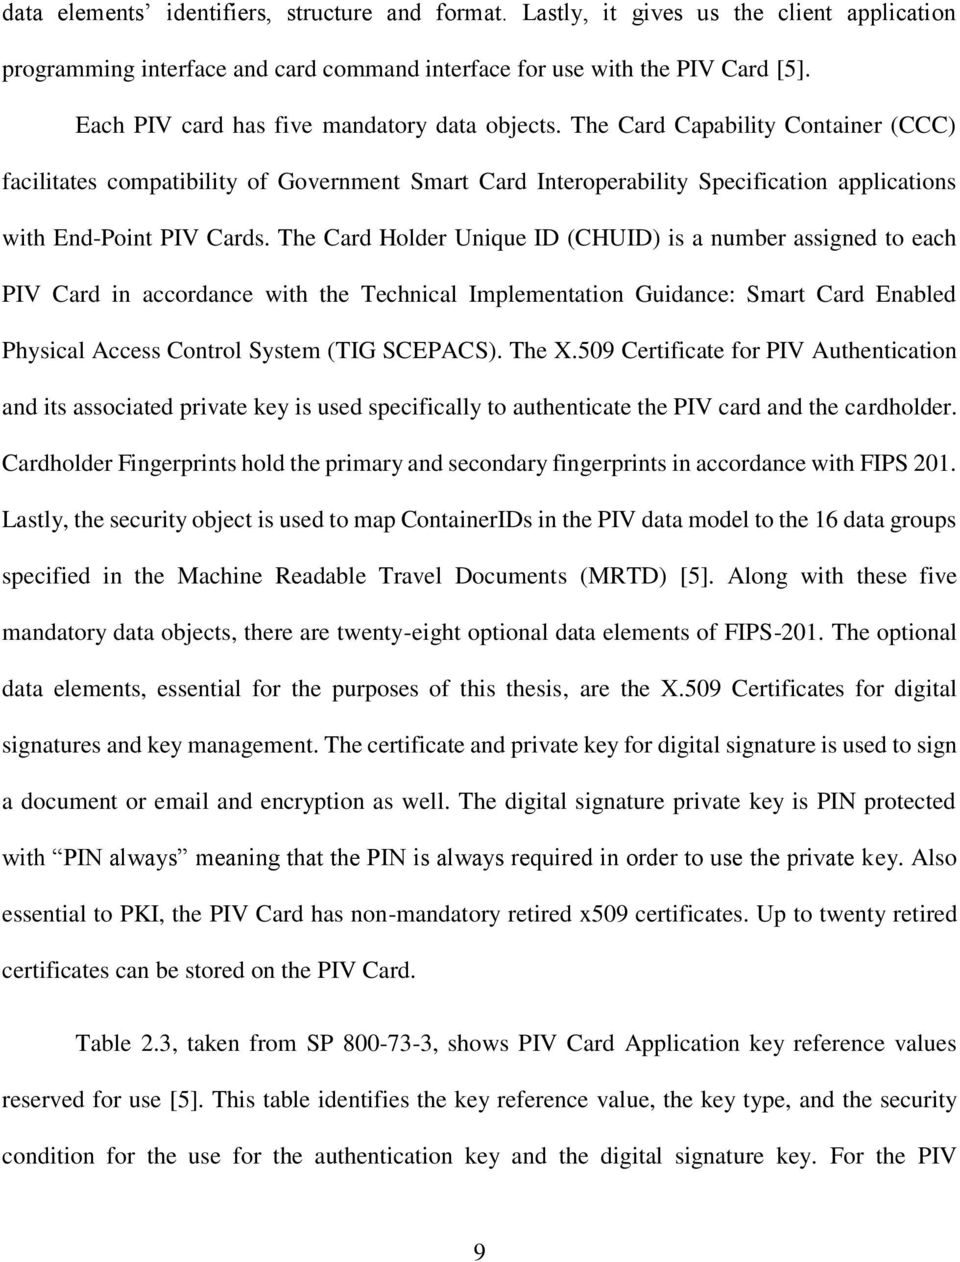 The Card Capability Container (CCC) facilitates compatibility of Government Smart Card Interoperability Specification applications with End-Point PIV Cards.